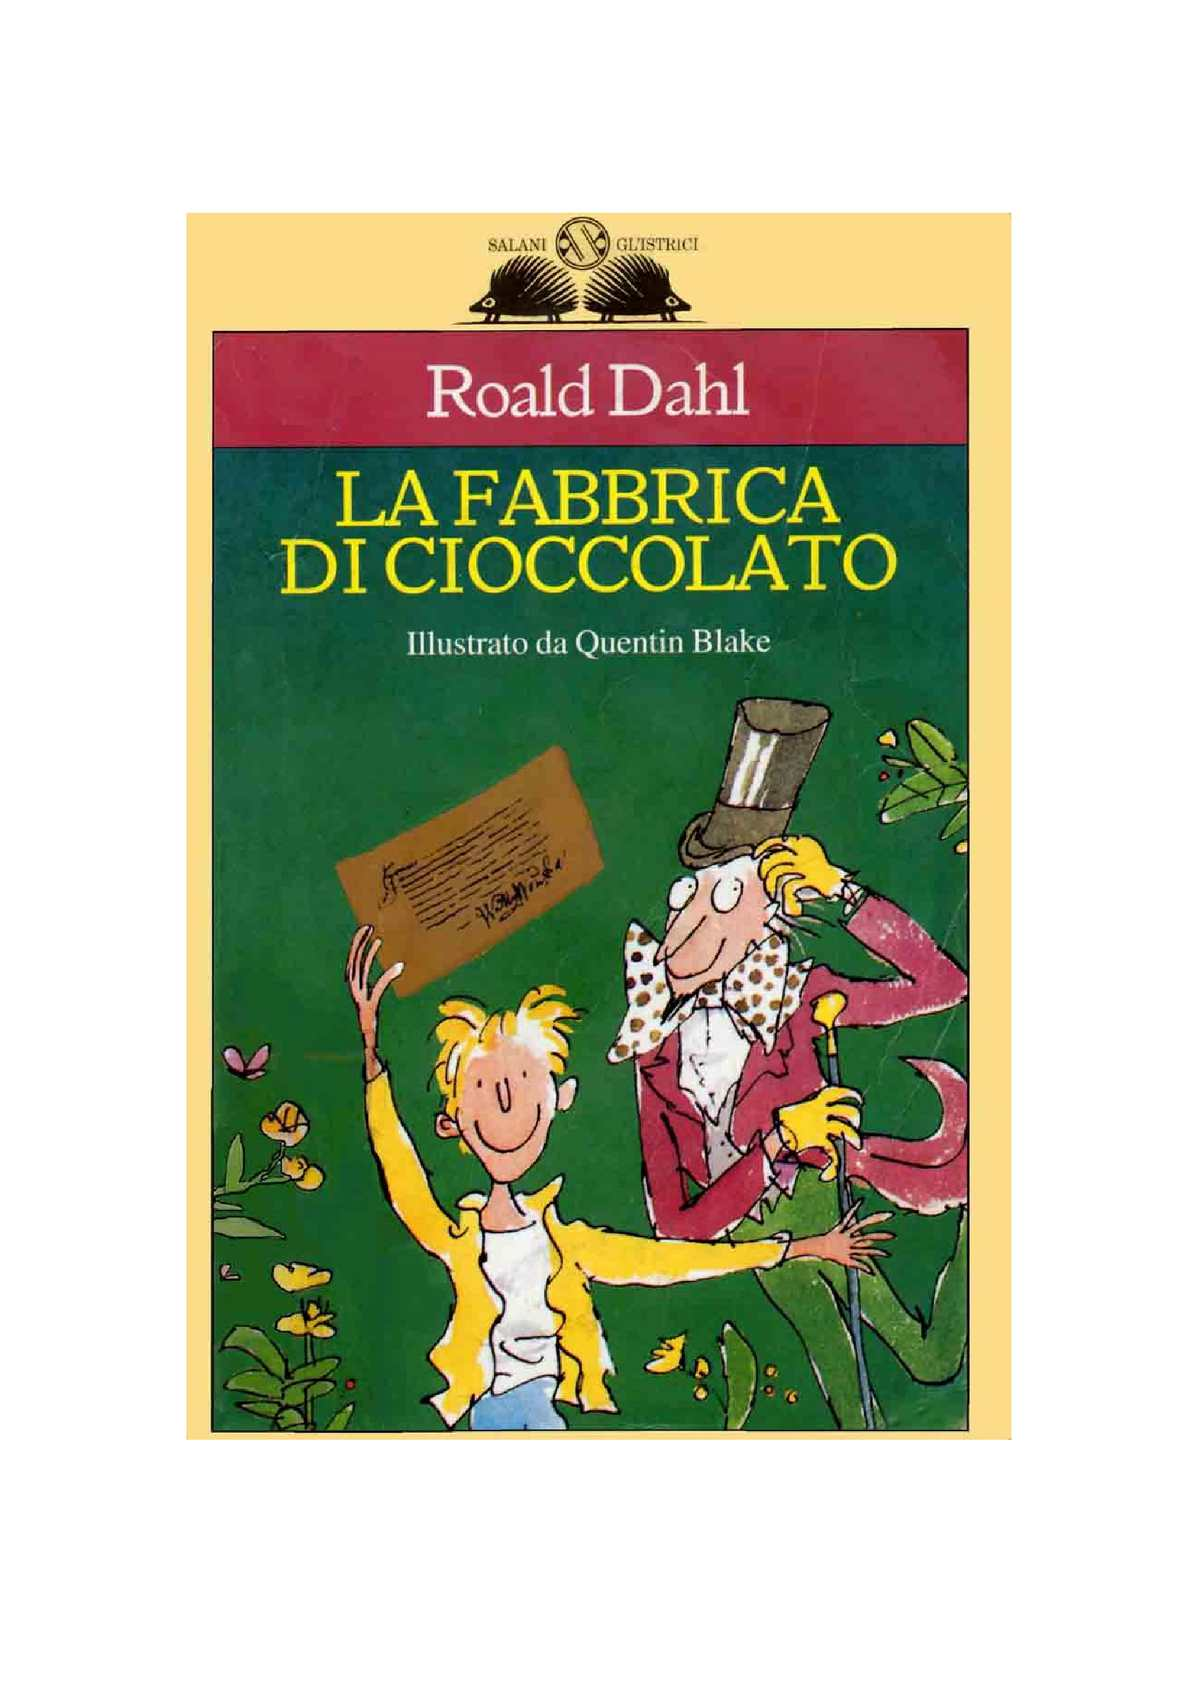 Childs Roald Dahl Augustus ricoperta Costume Libro Day Outfit Smiffys Nuovi